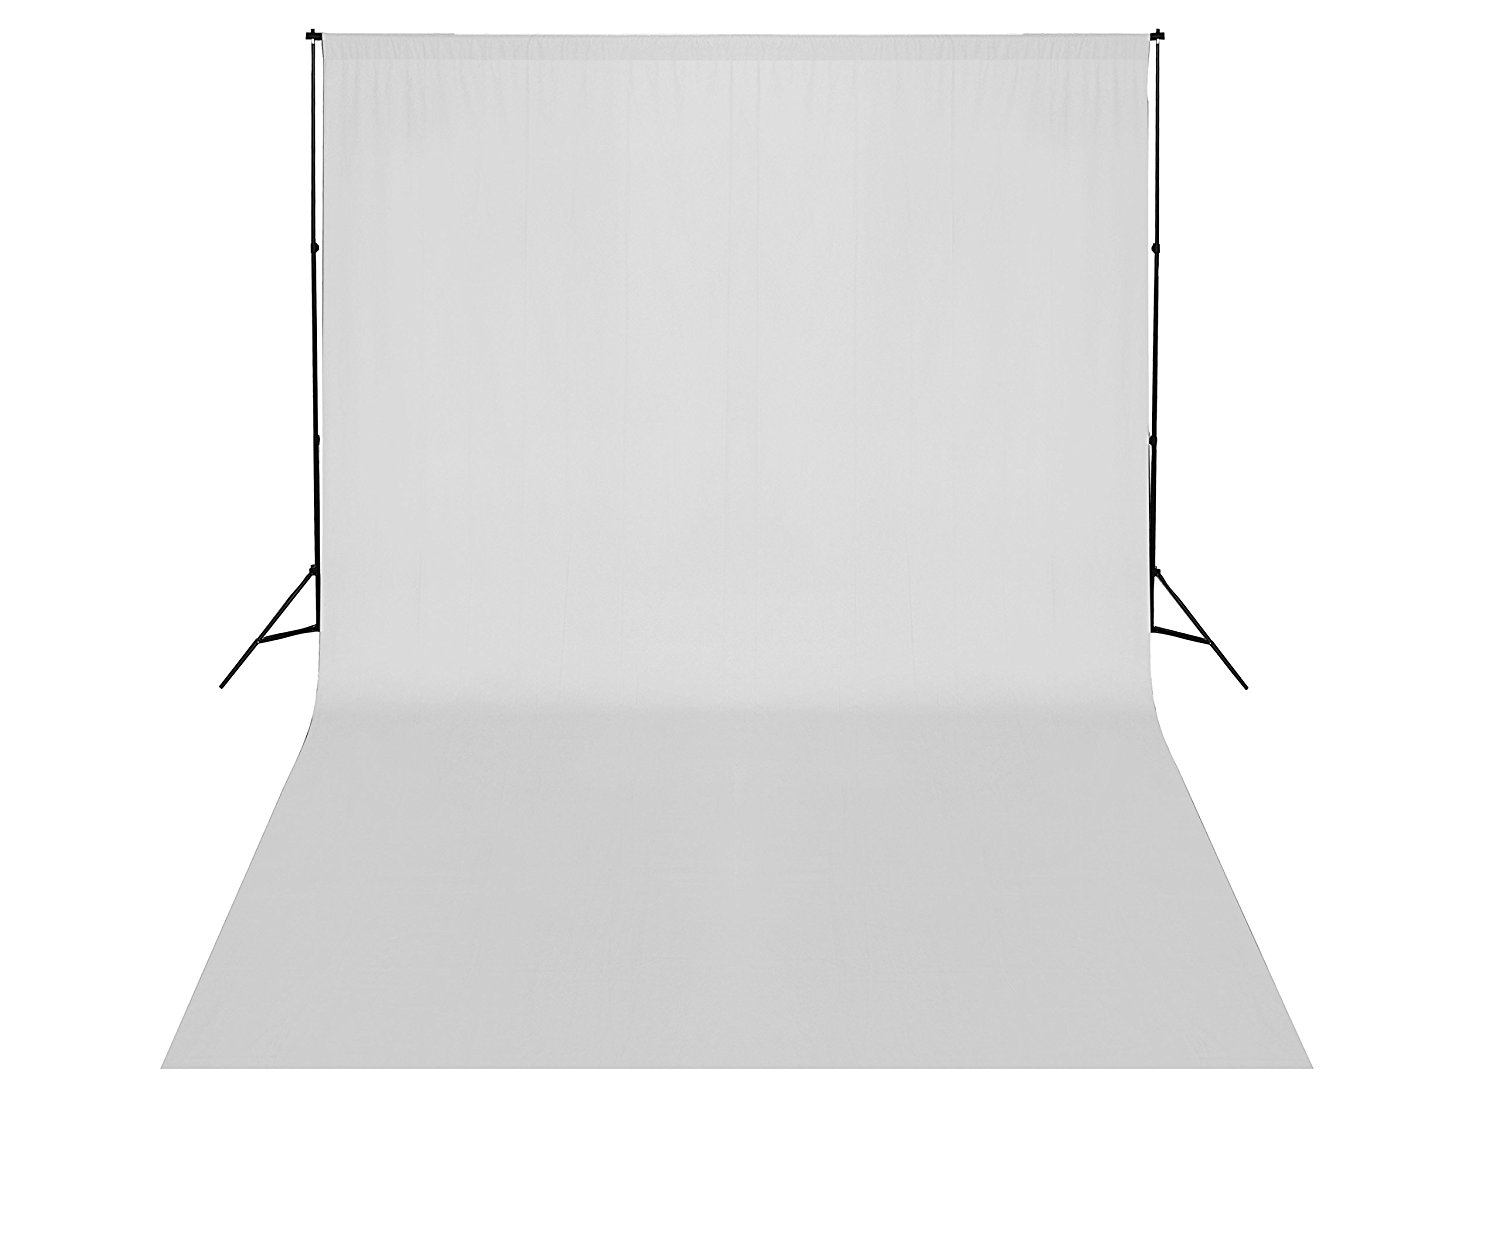 fond blanc pour studio photo